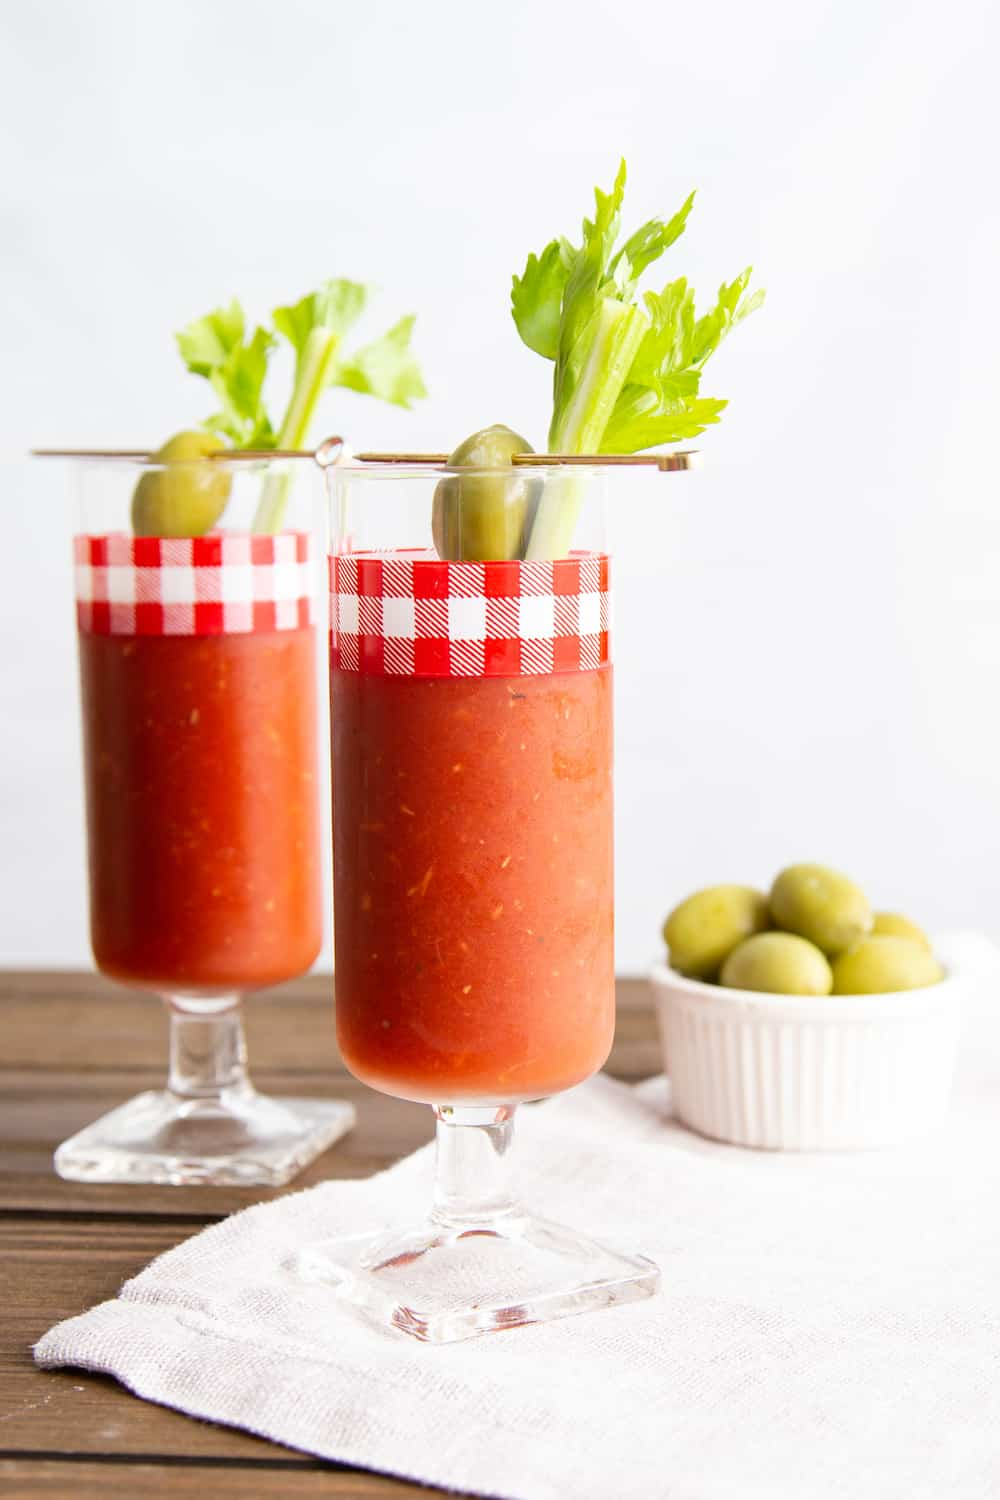 The Ruddy Mary: A Red Pepper Bloody Mary